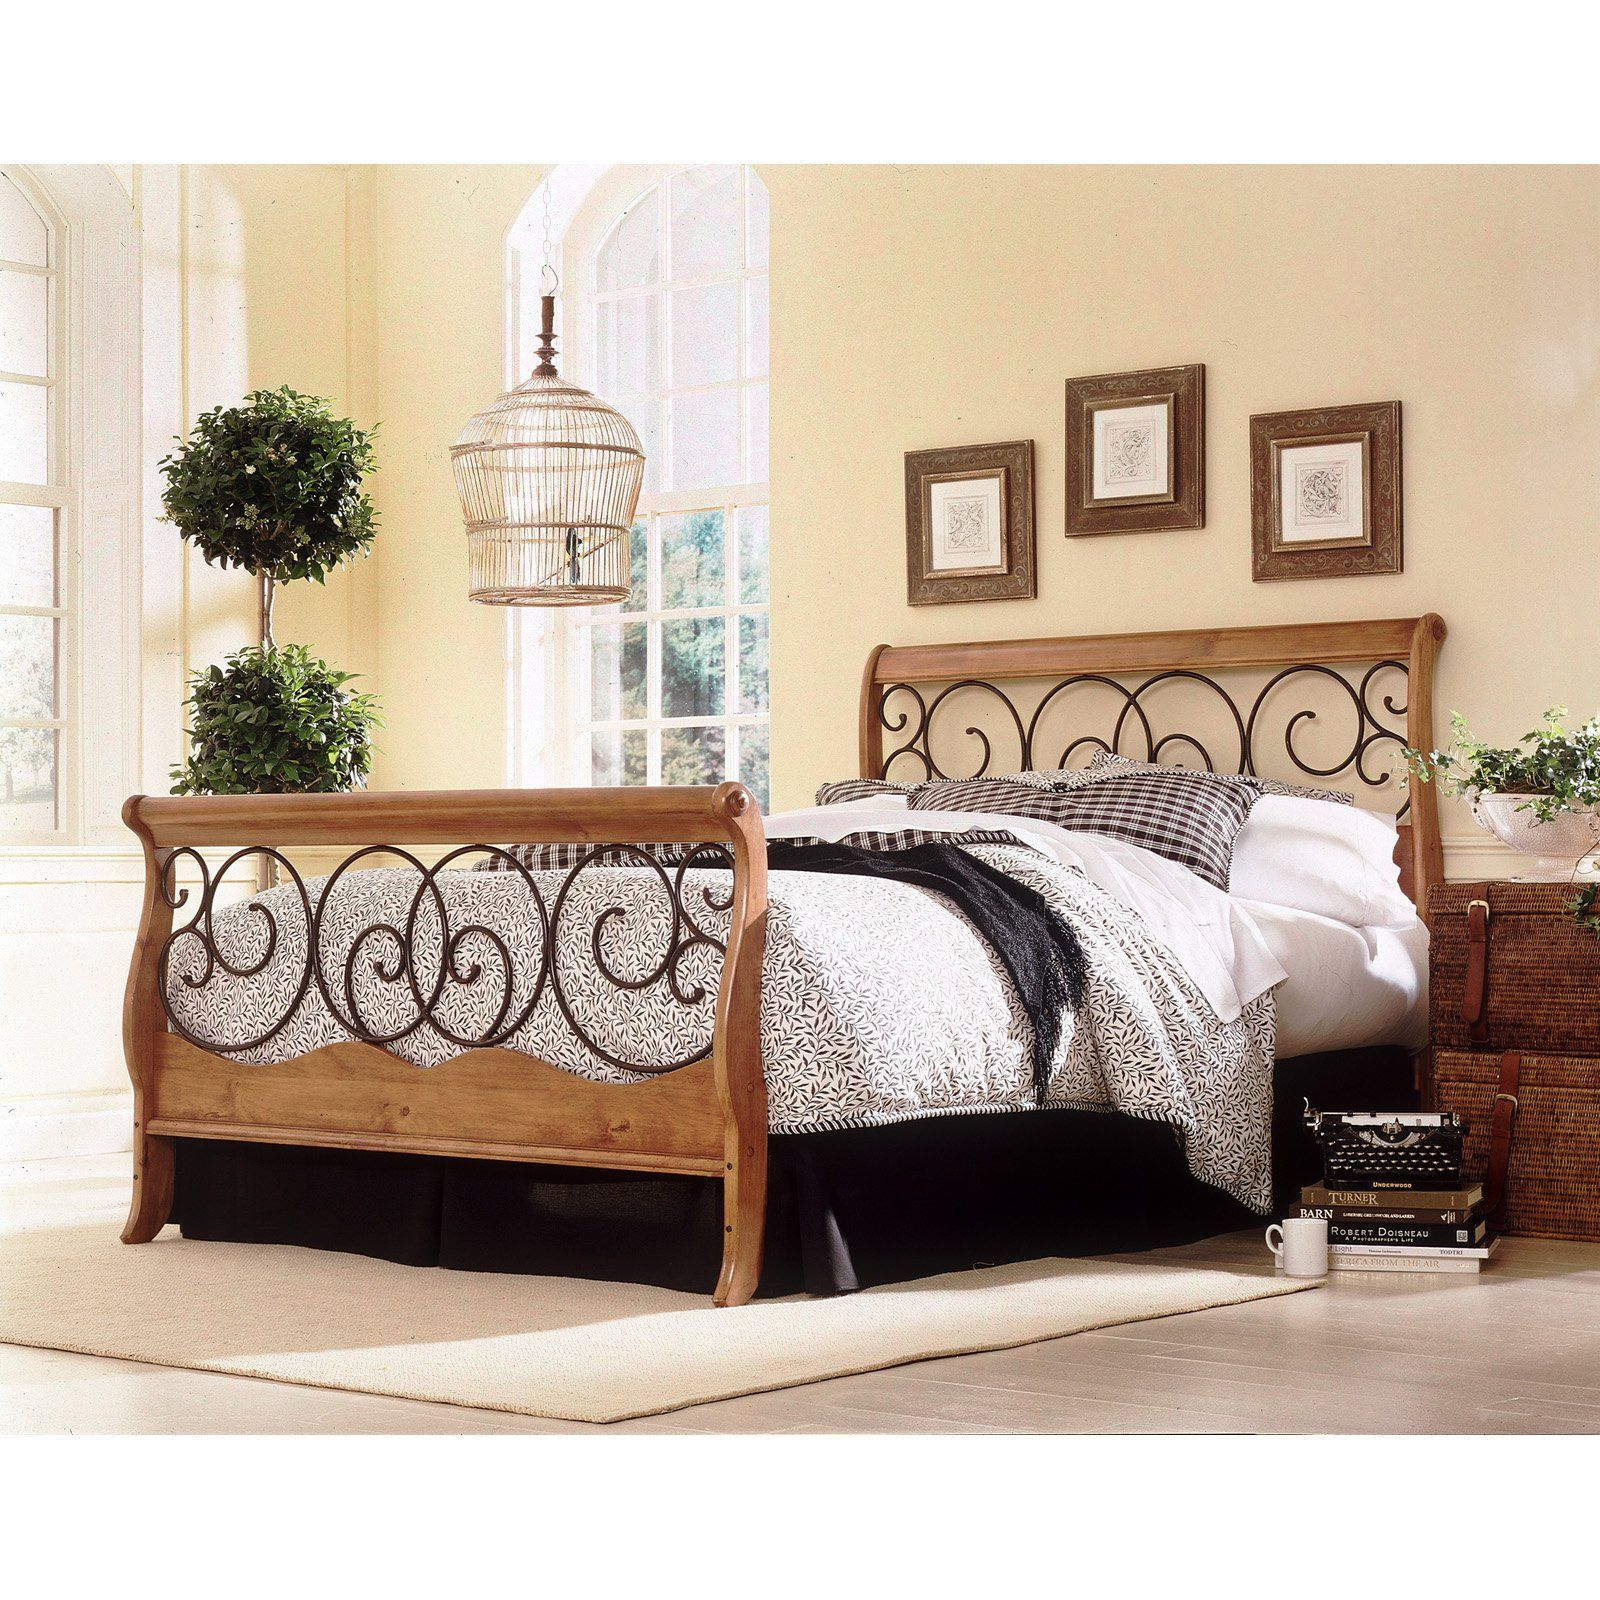 Have To Have It Dunhill Sleigh Bed 349 99 Hayneedle Bed